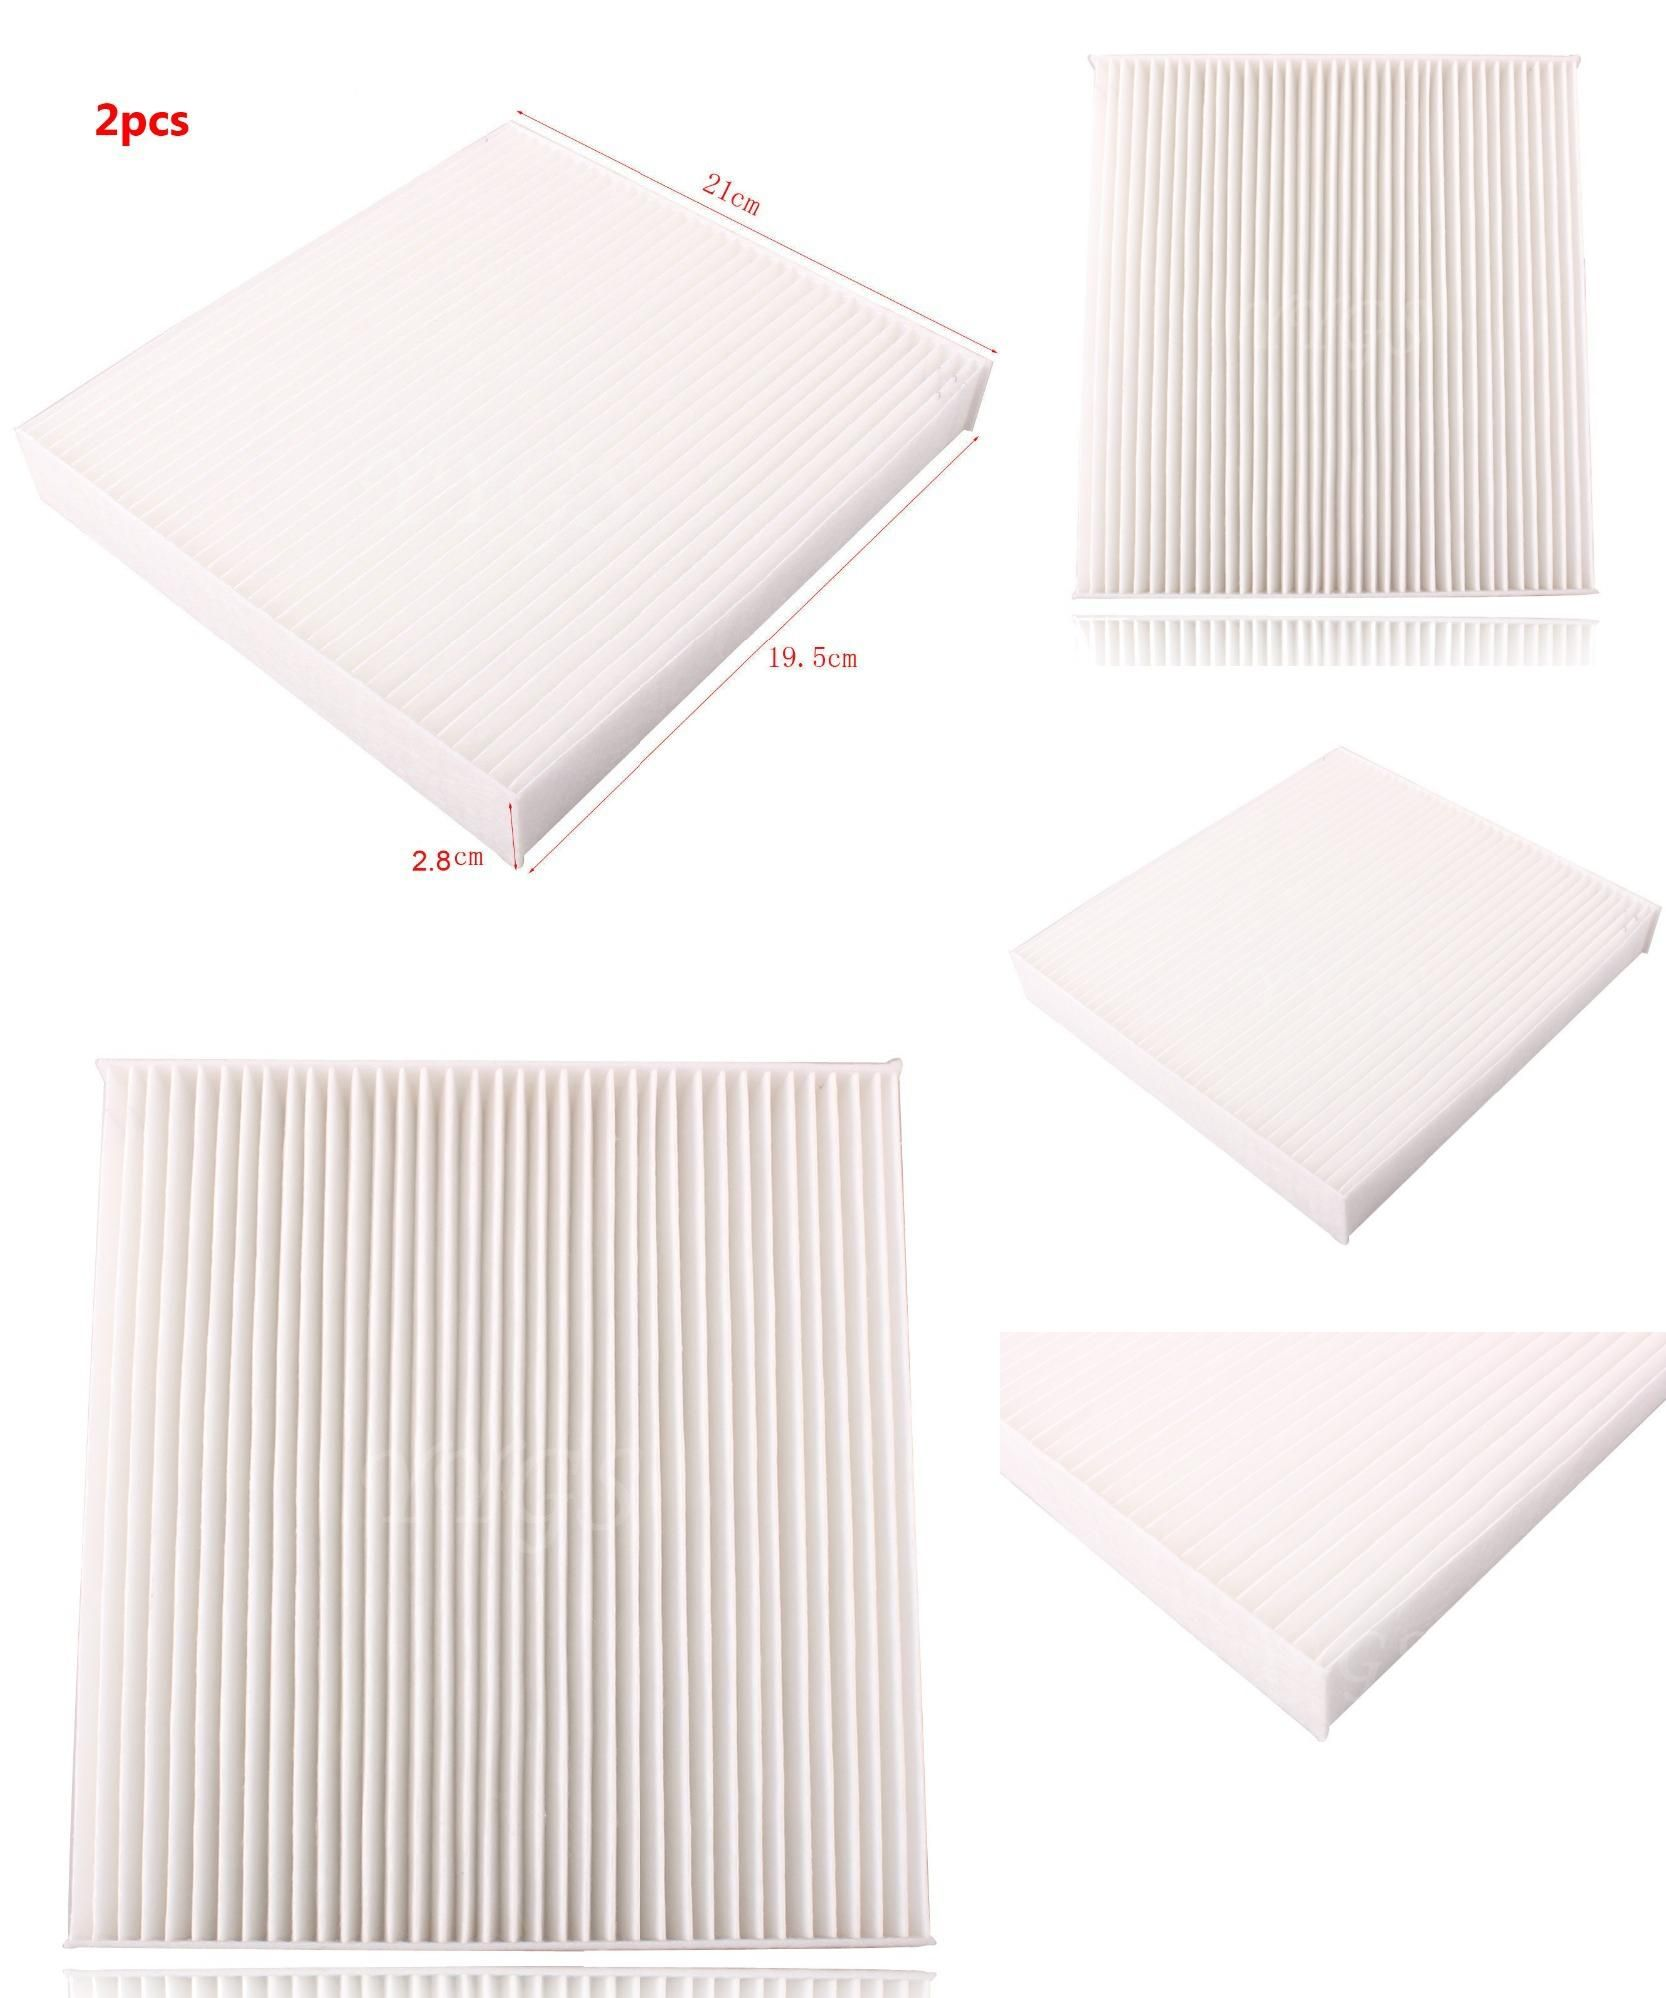 27b3e71a78f012aab4fe75999c5d2bc1 Amazing toyota Camry 2006 Cabin Air Filter Cars Trend